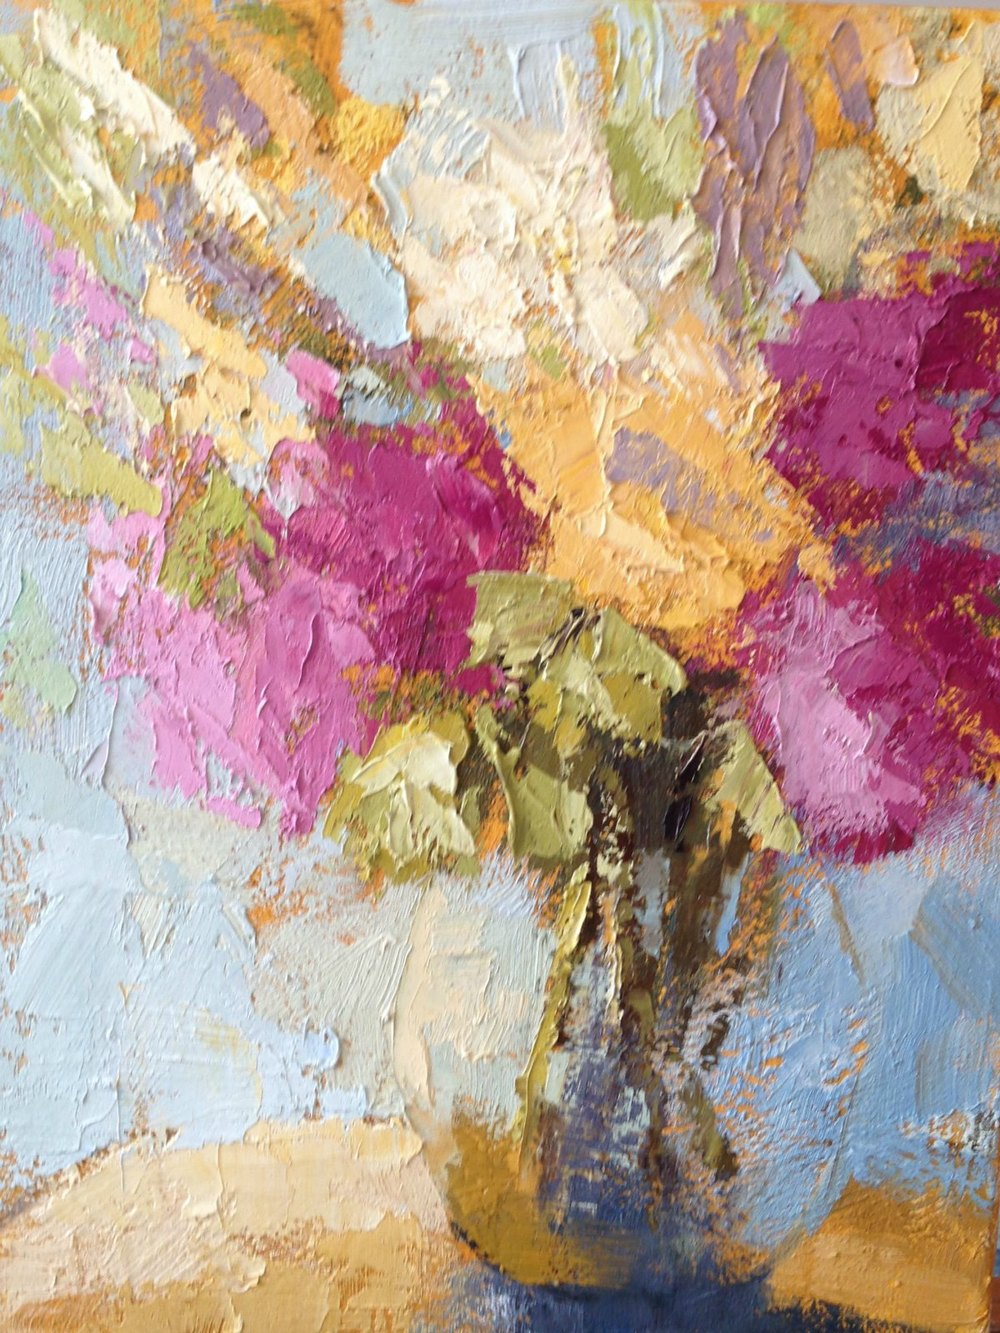 Textured Floral Study